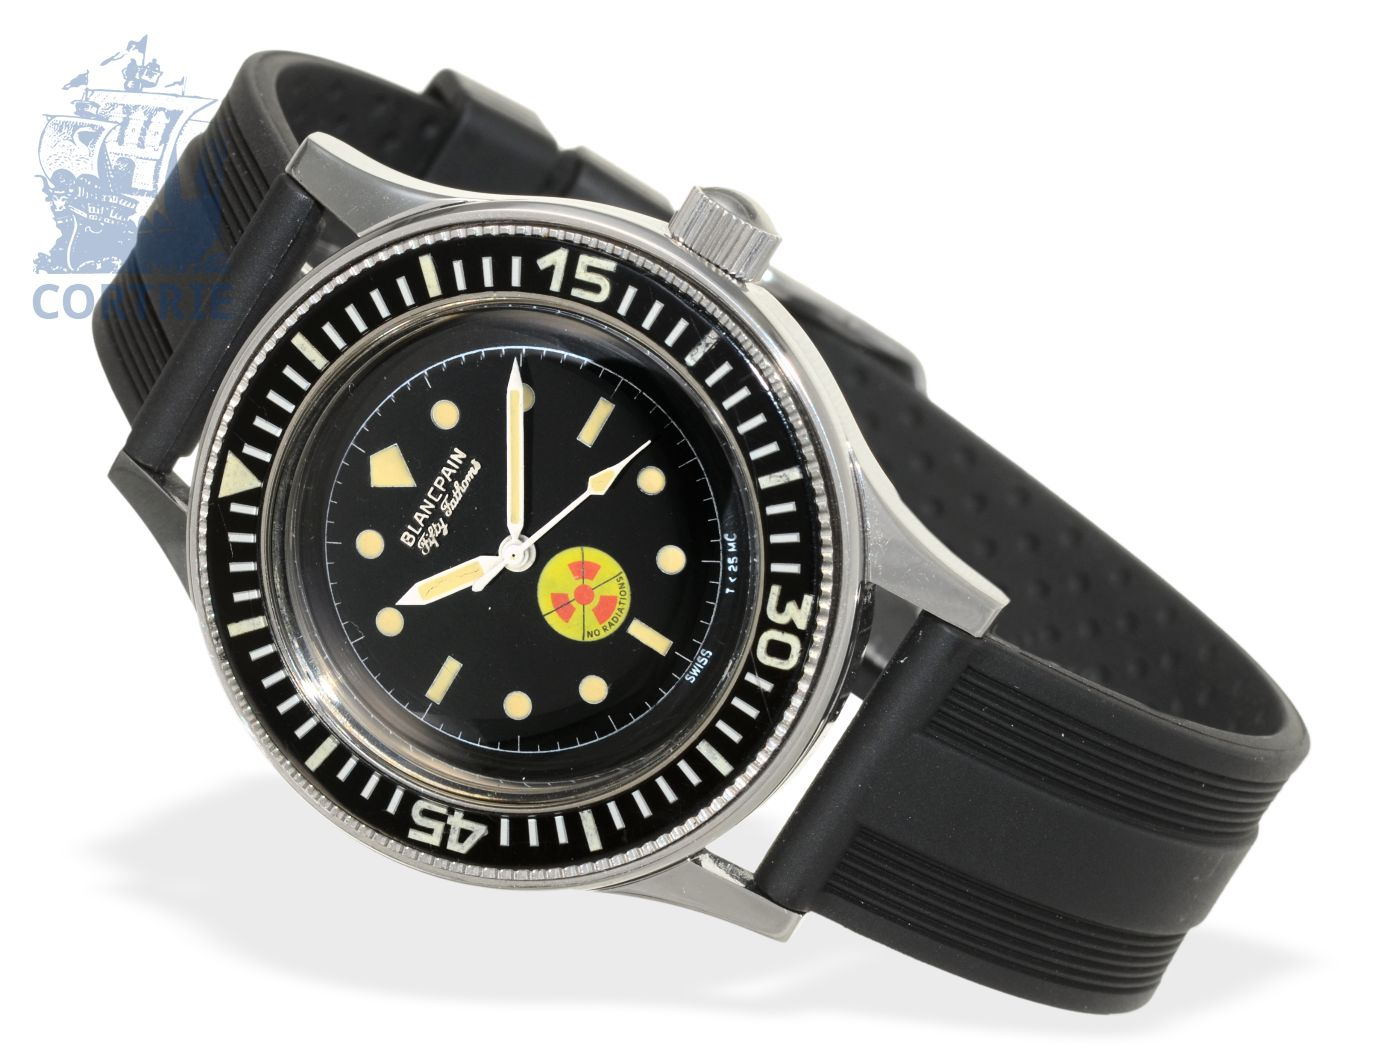 Wristwatch: extremely rare military diver's watch, Blancpain Fifty Fathoms No Radiations, 50s/60s-